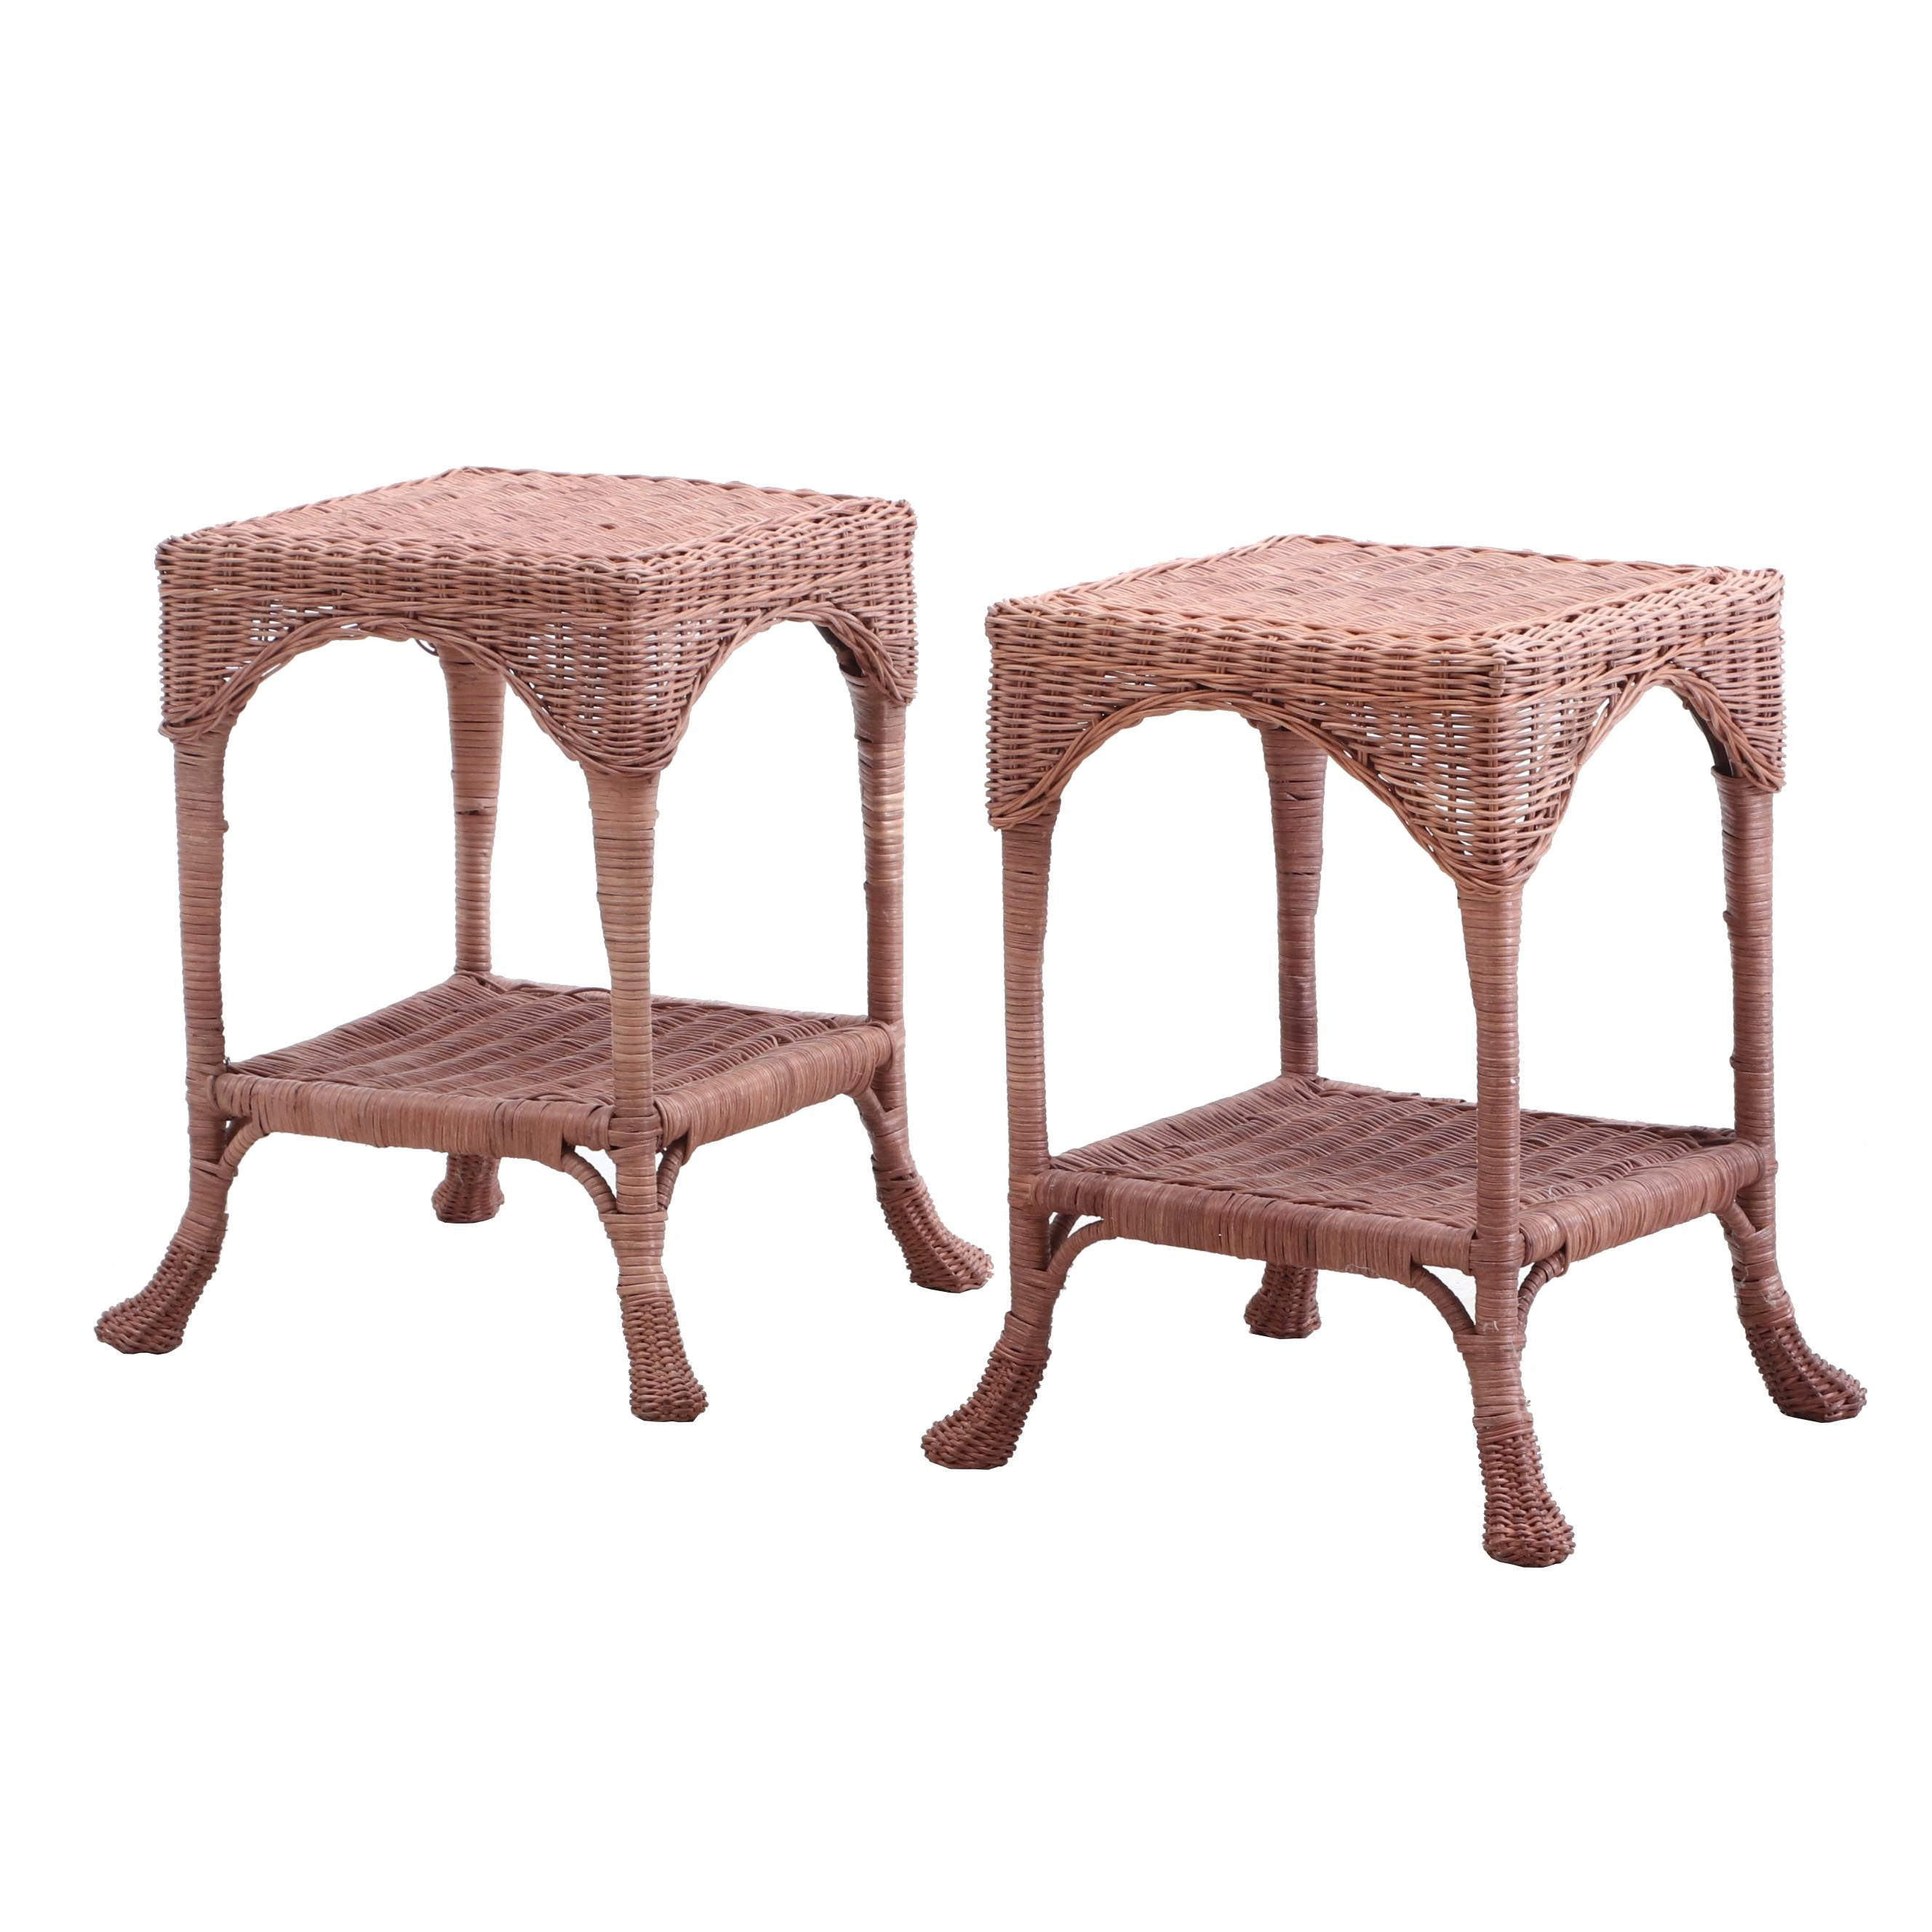 Woven Rattan End Tables